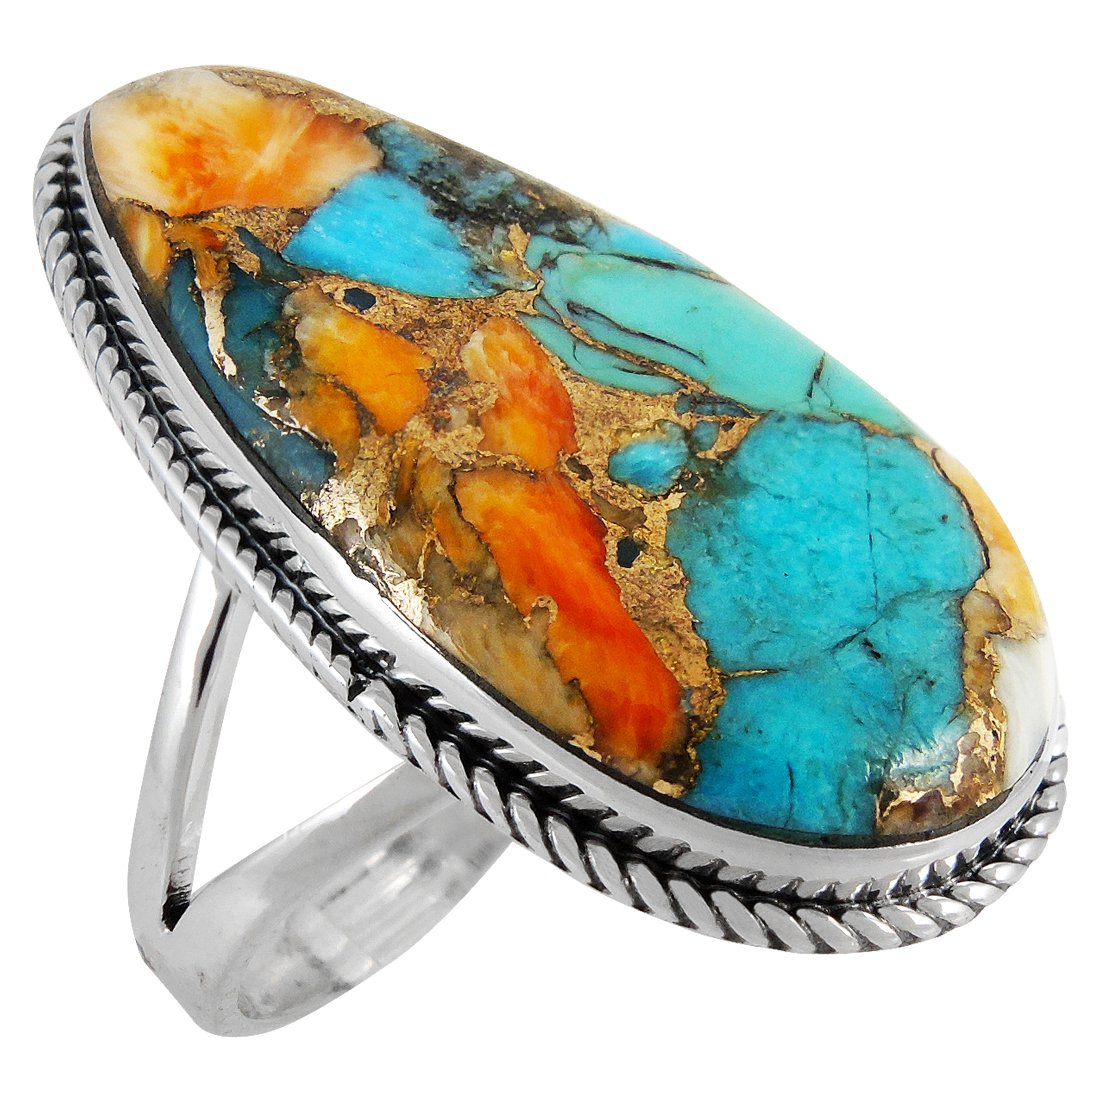 Spiny Turquoise Ring Sterling Silver 925 Genuine Turquoise Size 6 to 12 (7)